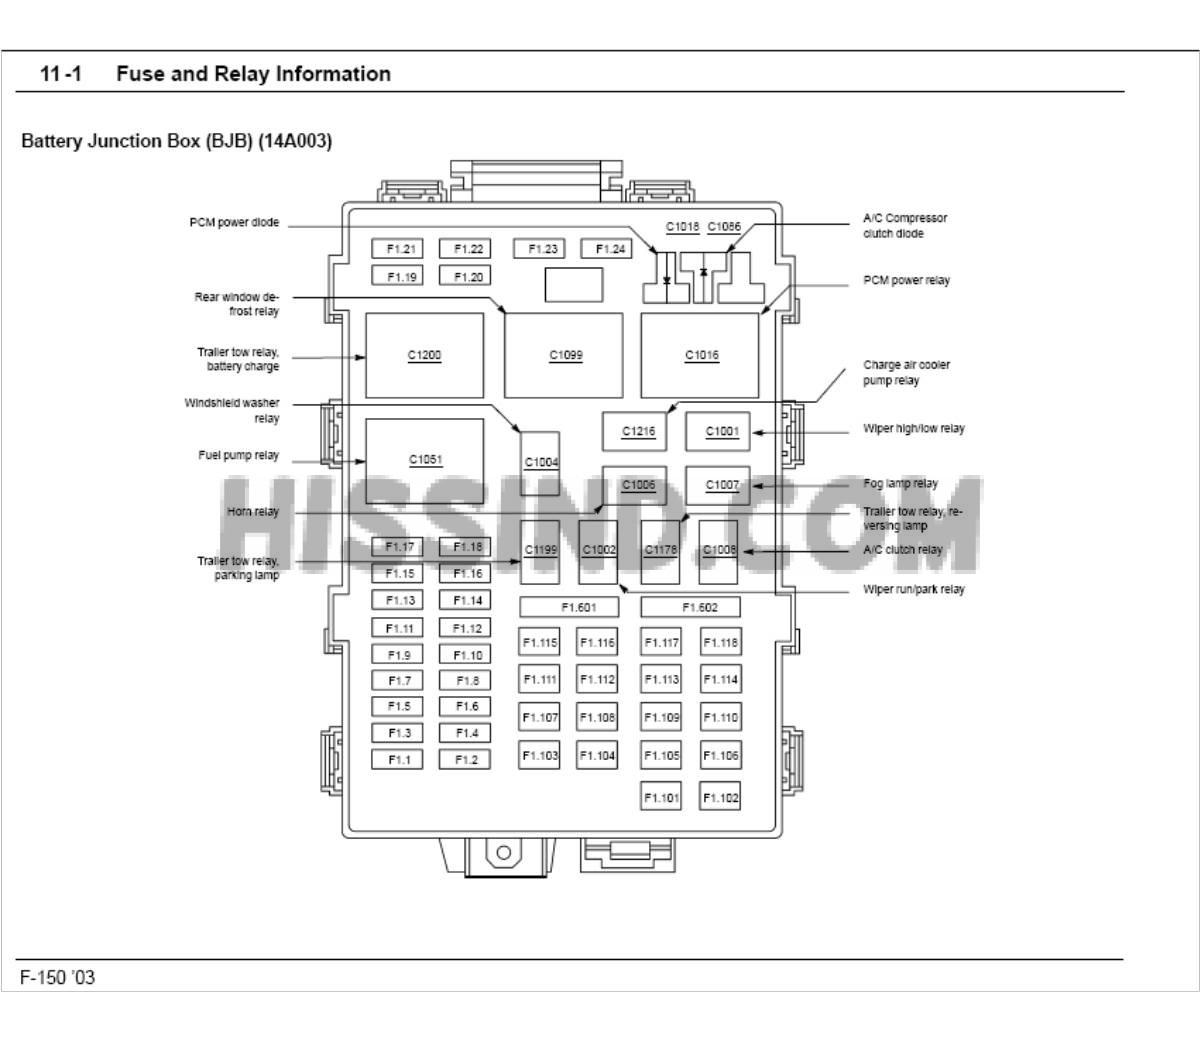 fuse box diagram for 99 ford f150